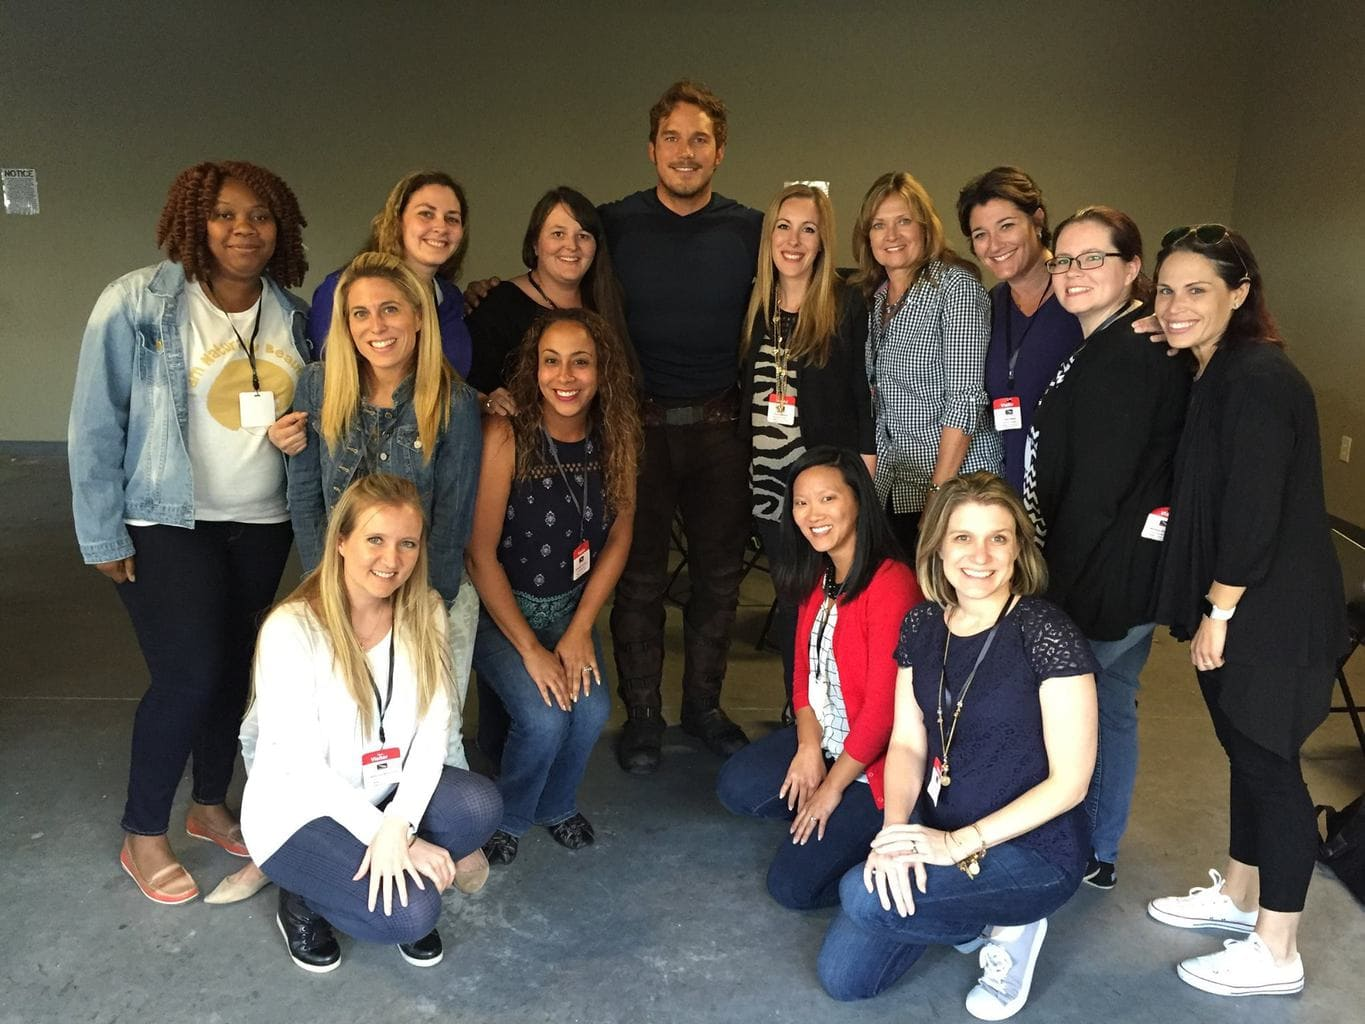 Who's excited about seeing Chris Pratt in Guardians of the Galaxy Vol. 2? This movie is going to rock your world!